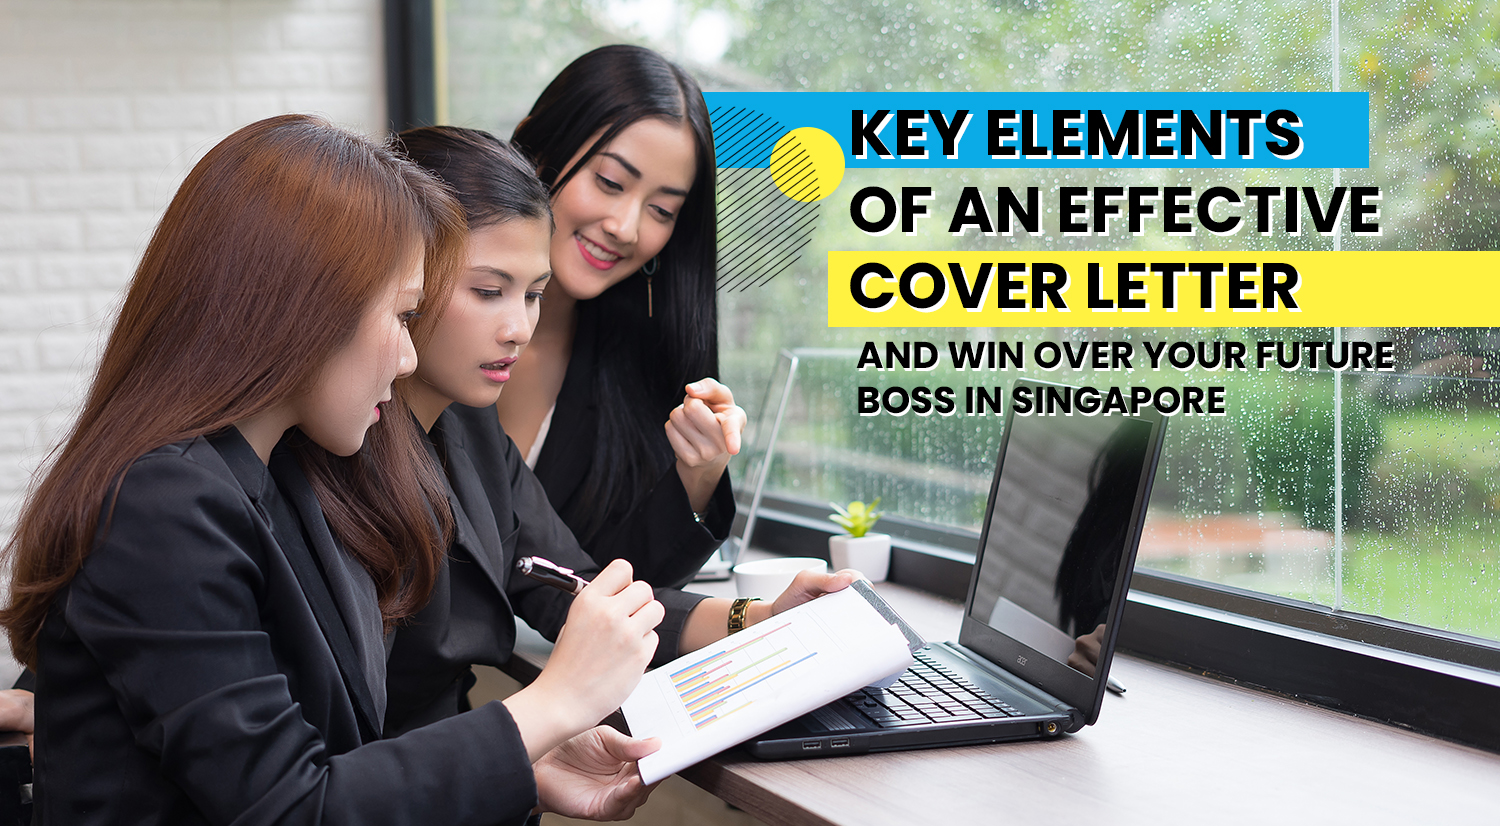 How To Write An Effective Cover Letter And Win Over Your Future Boss In Singapore